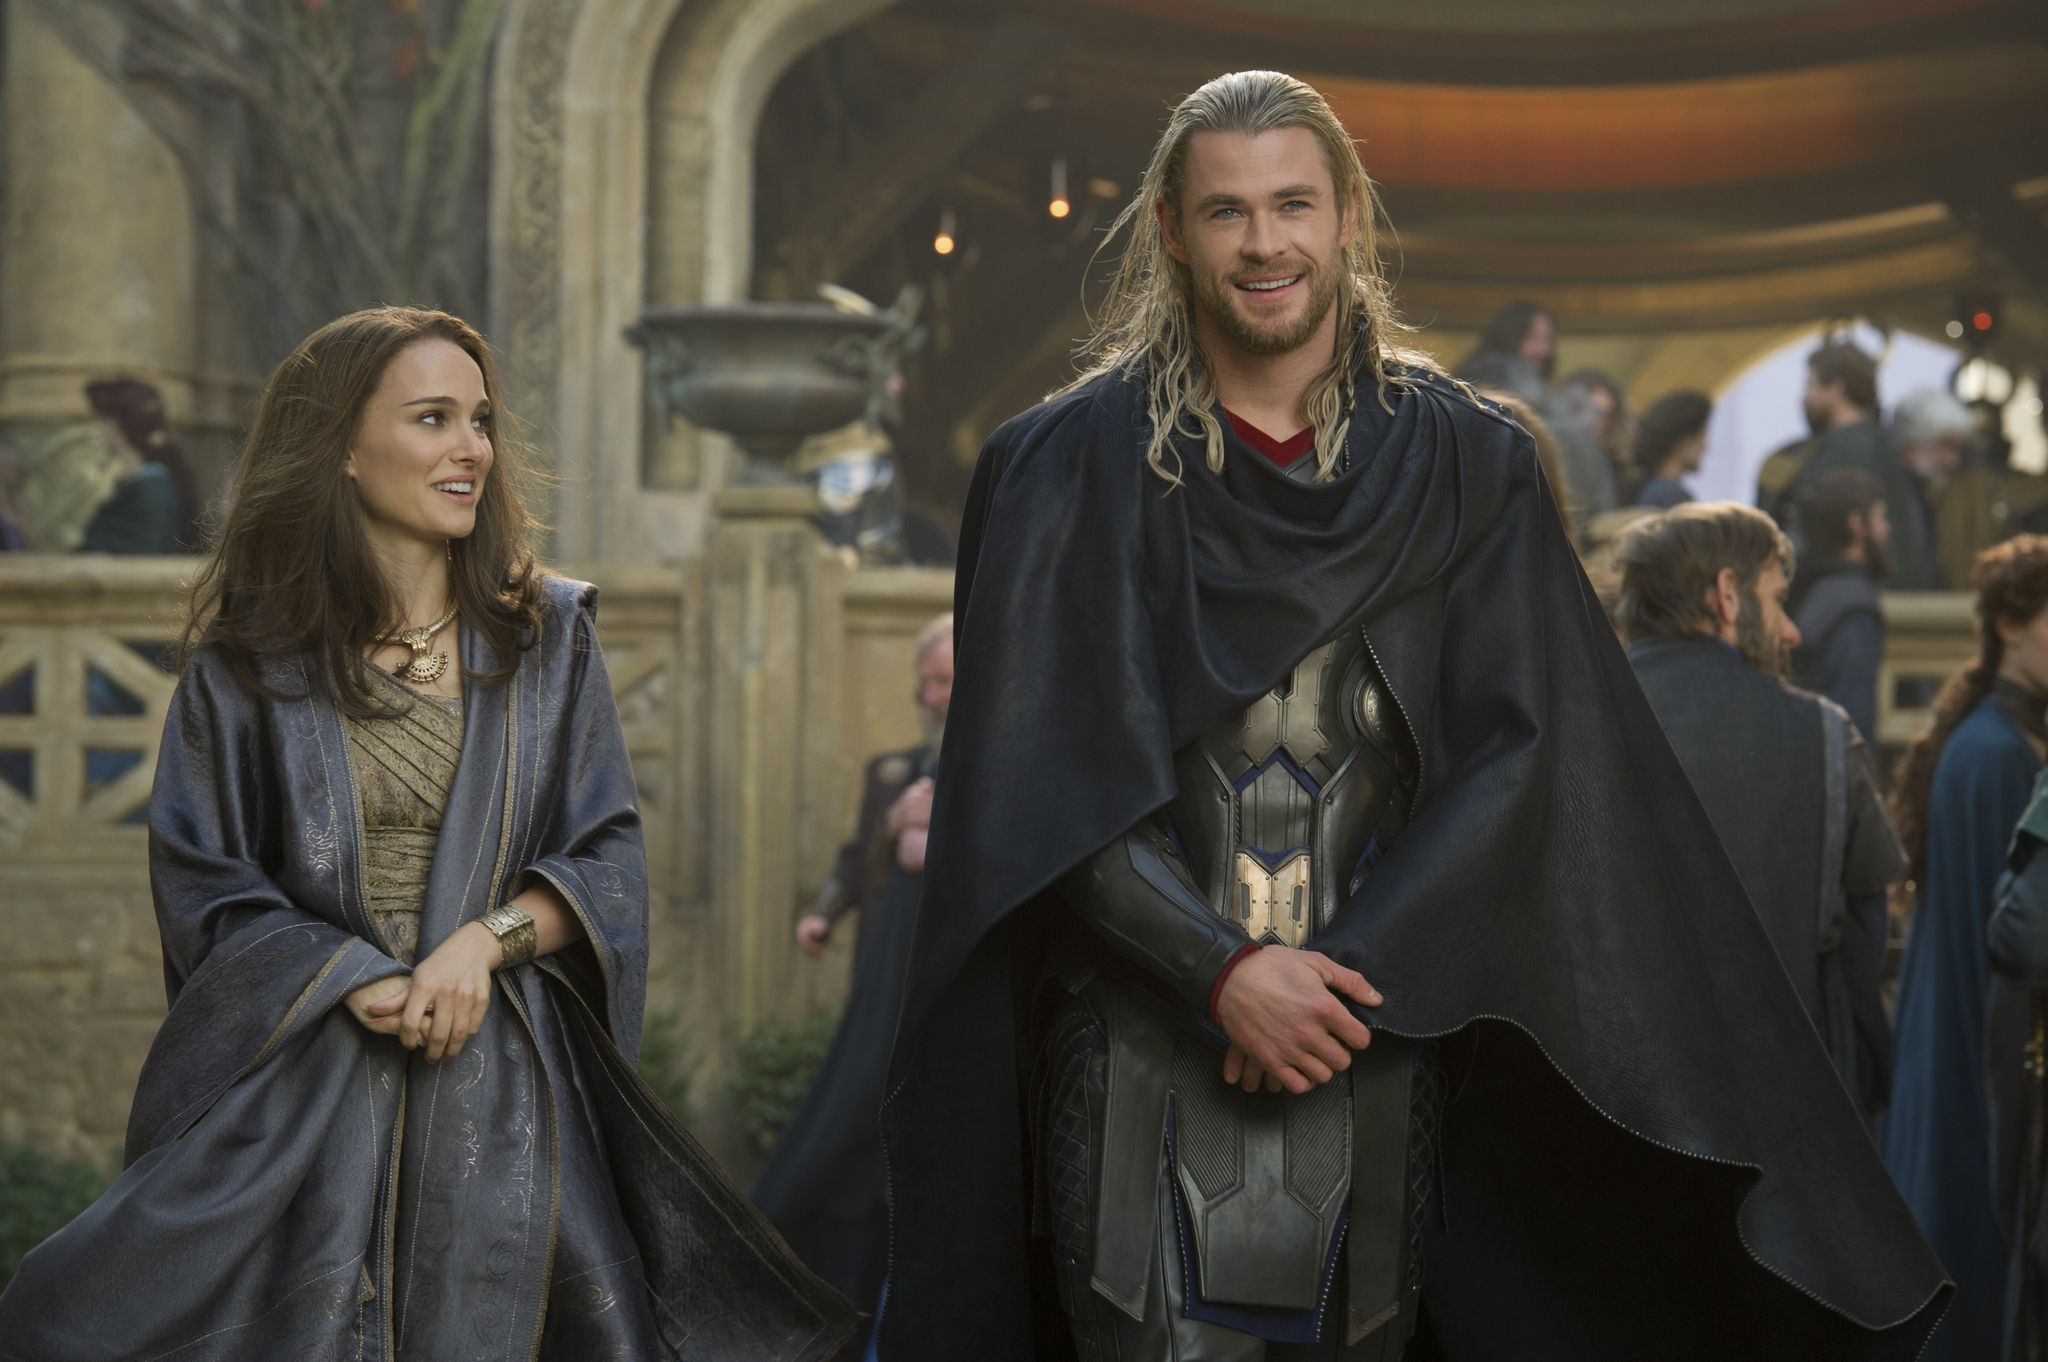 Natalie Portman and Chris Hemsworth in Thor: The Dark World (2013)